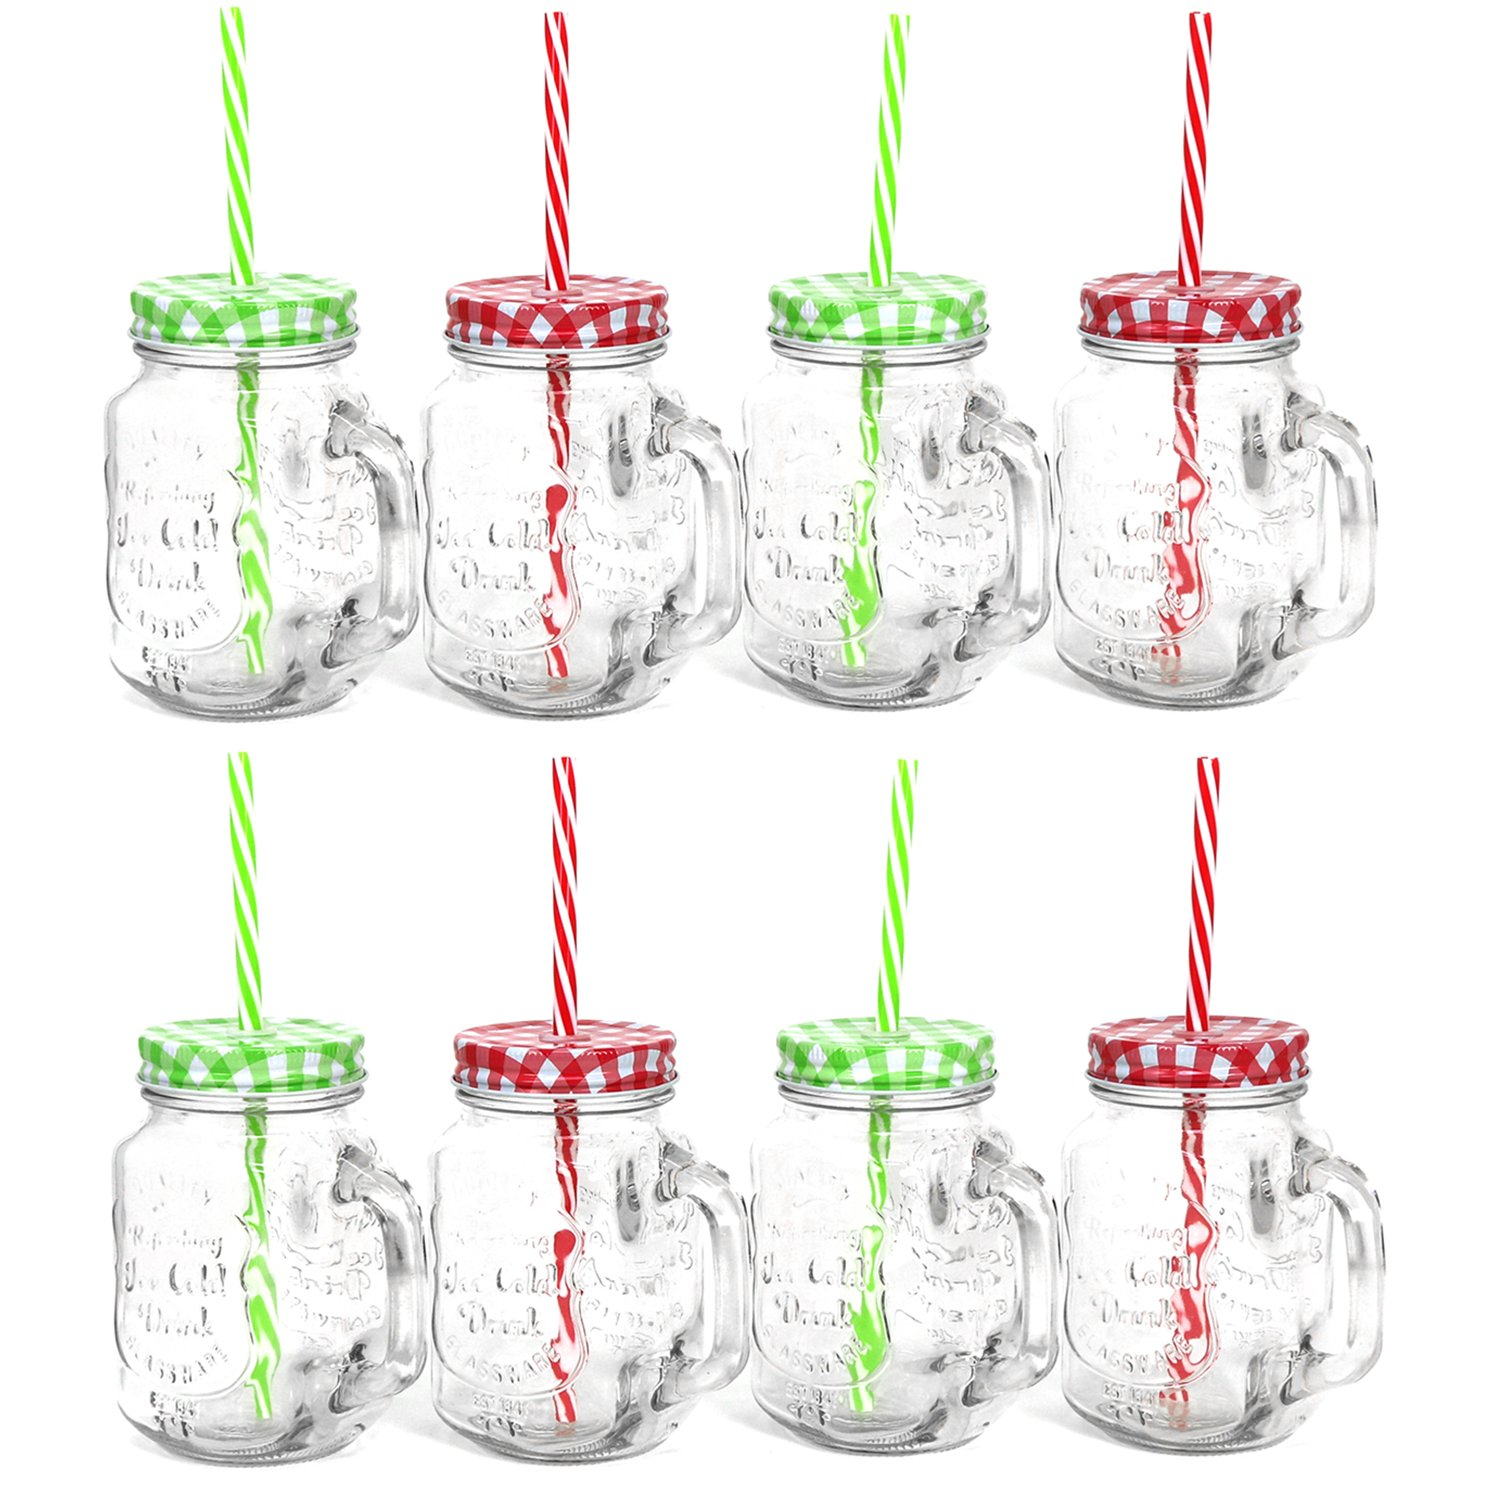 COM-FOUR® 6X Glass with Straw and lid, Tumbler Glasses with Handle, 470 ml (06 Piece Mix)